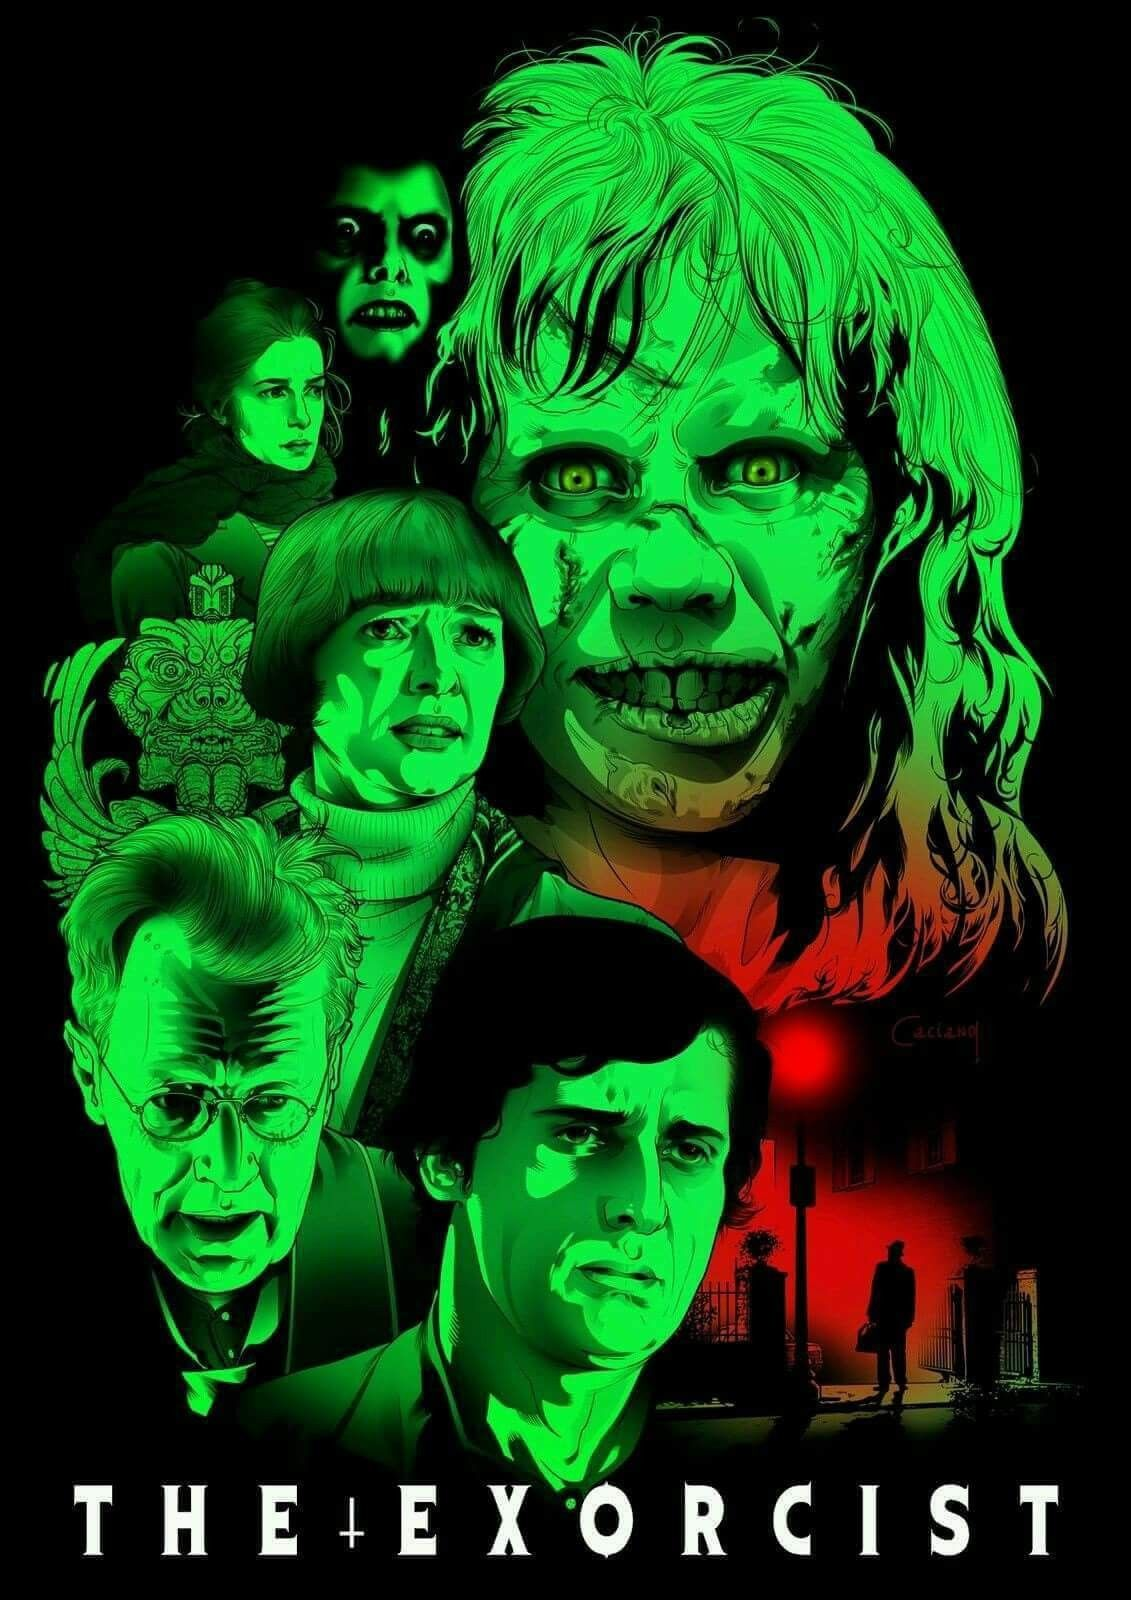 The Exorcist Movie Art Silk Poster 24x36inch